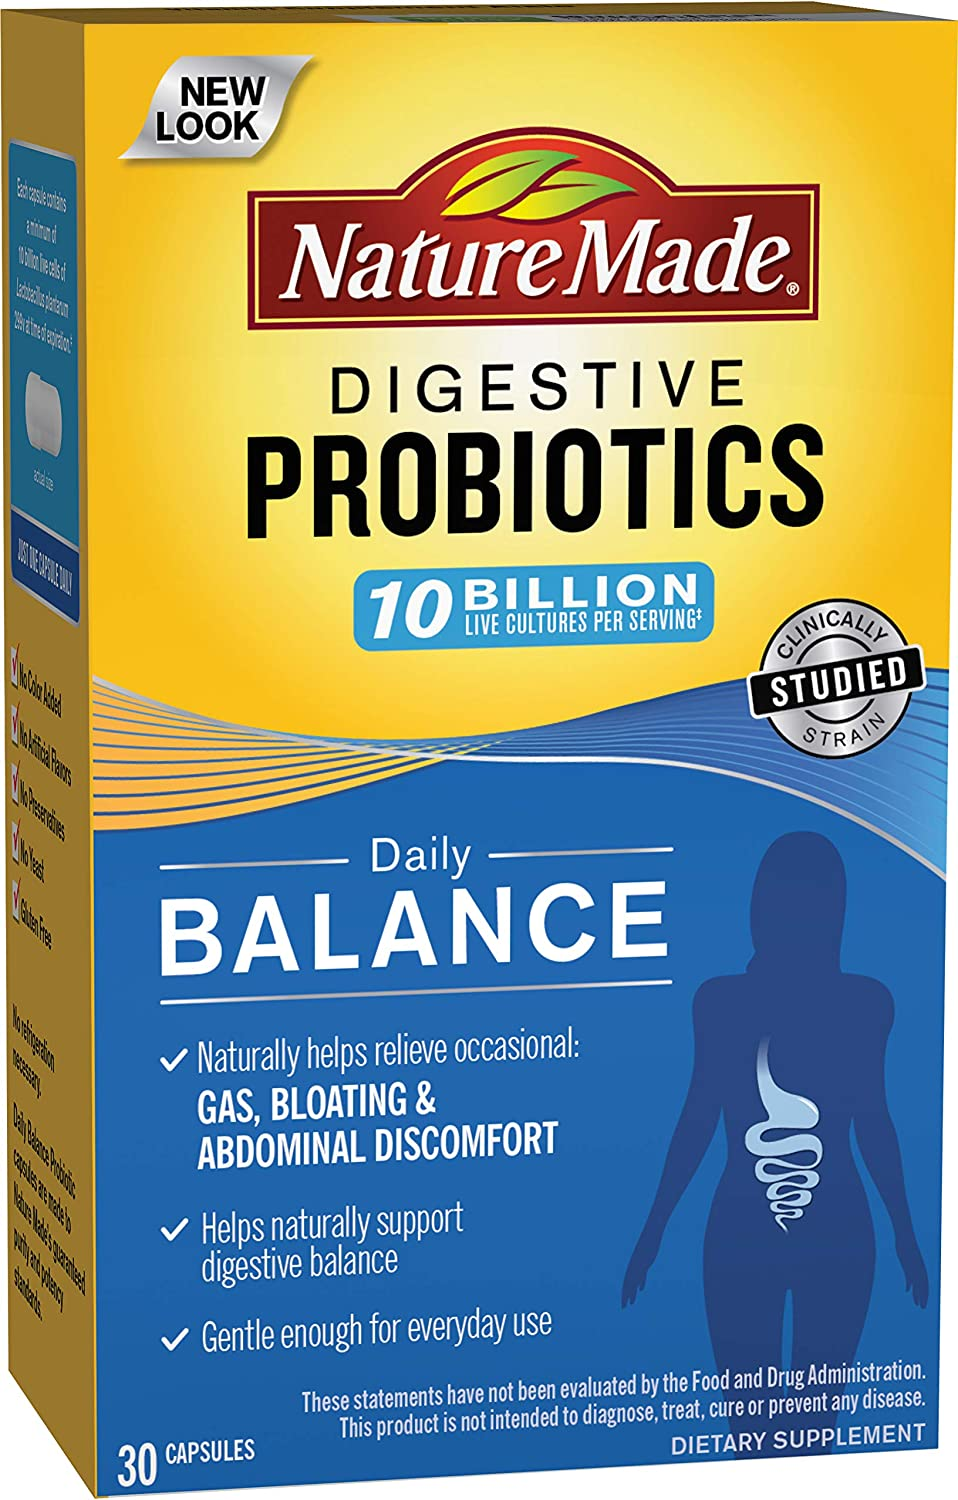 Nature Made Daily Balance Digestive Probiotic, 30 Count